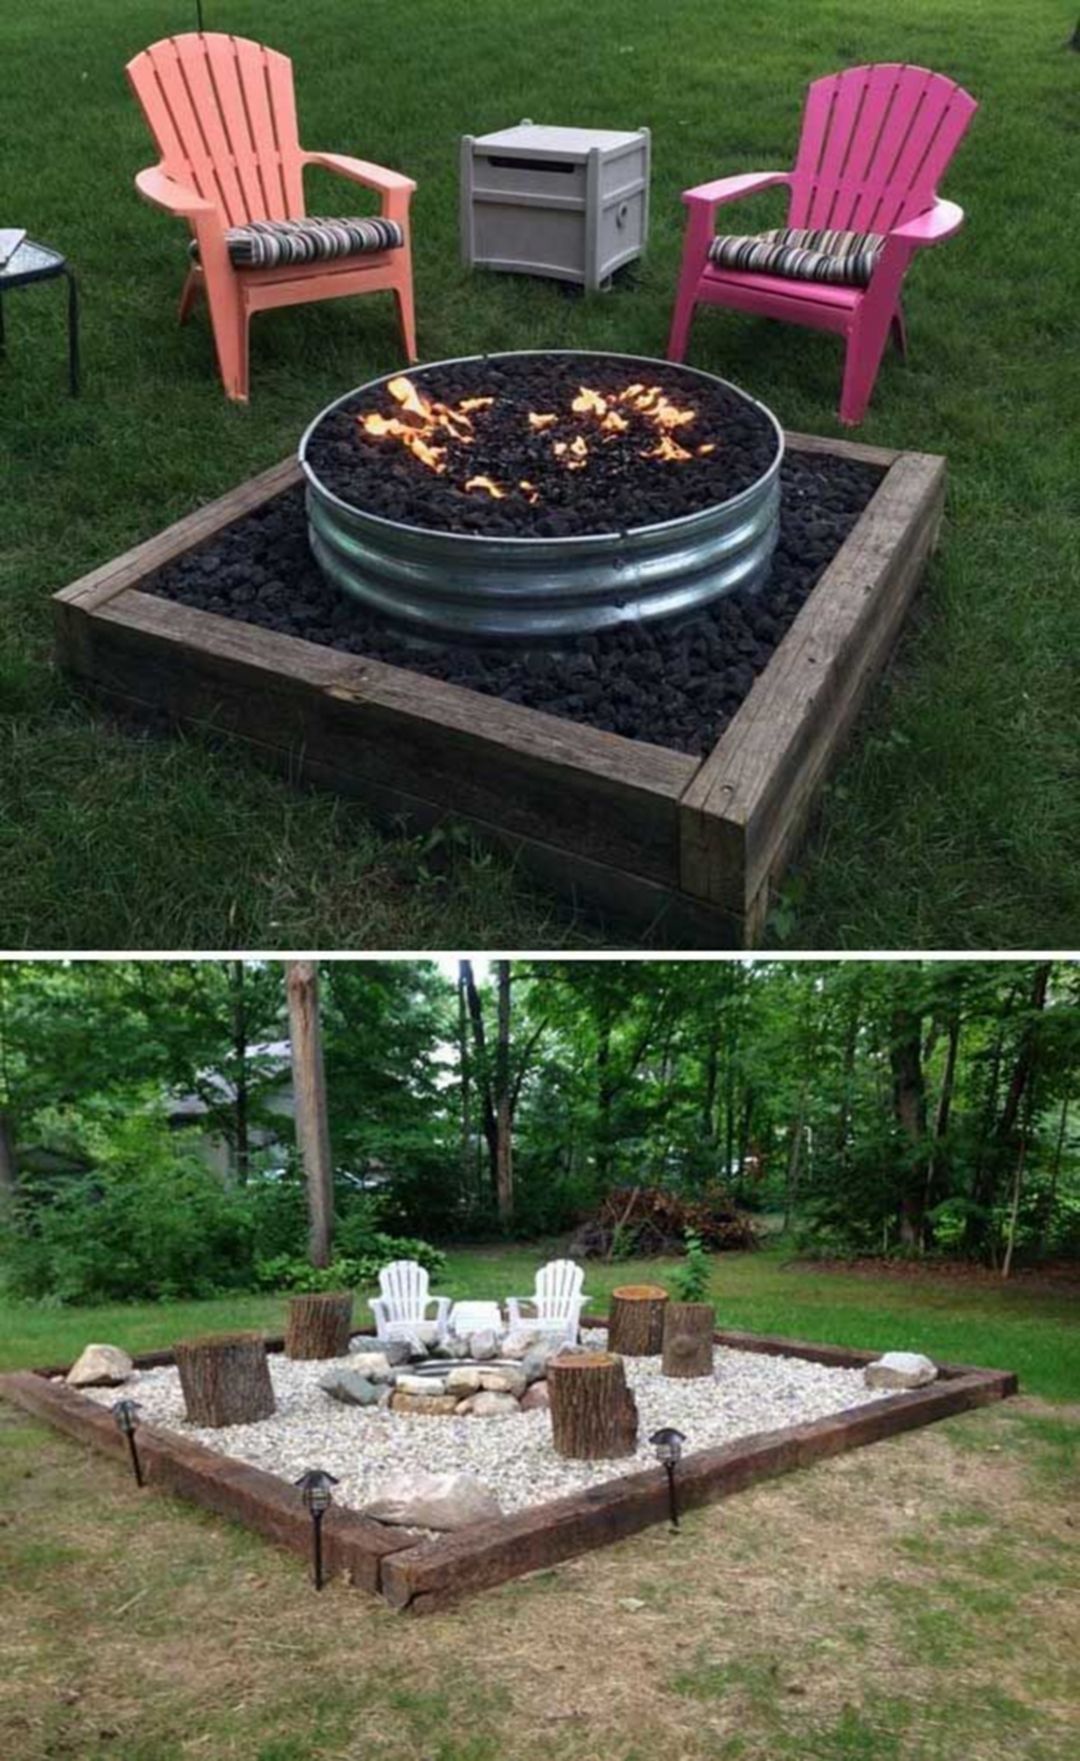 77 stunning backyard fire pit ideas with cozy seating designs